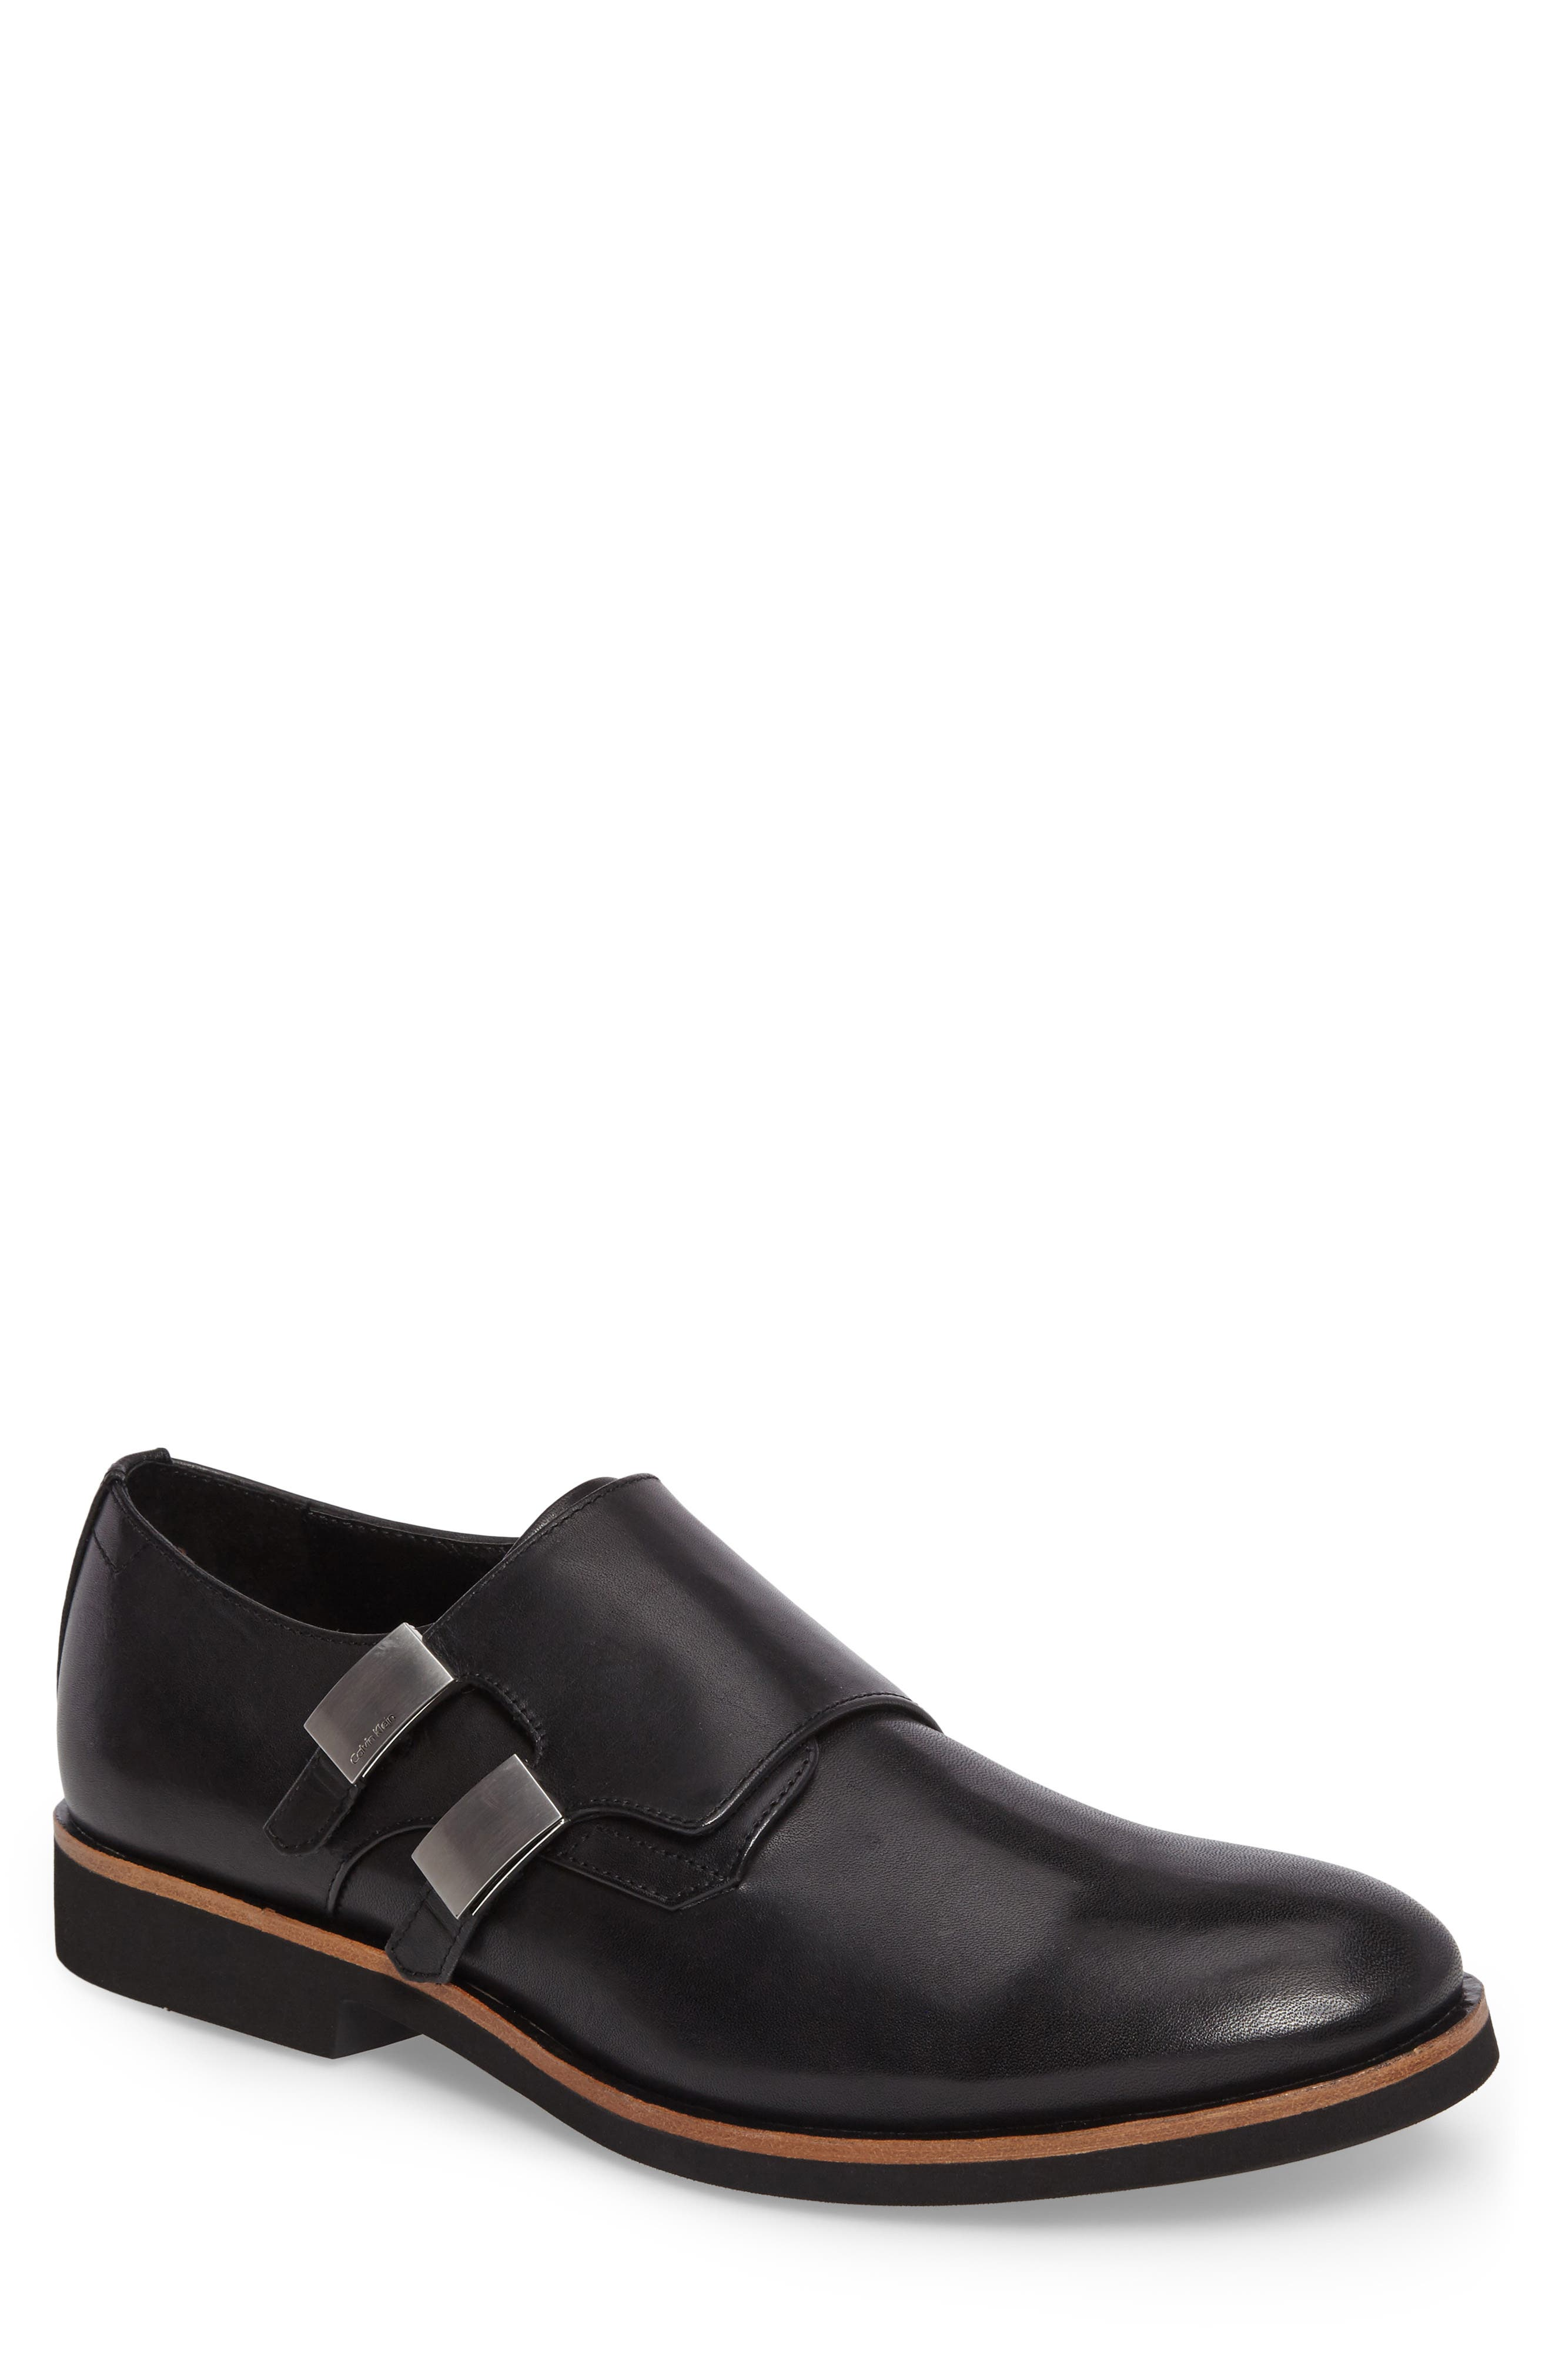 Finnegan Double Monk Strap Shoe,                         Main,                         color,